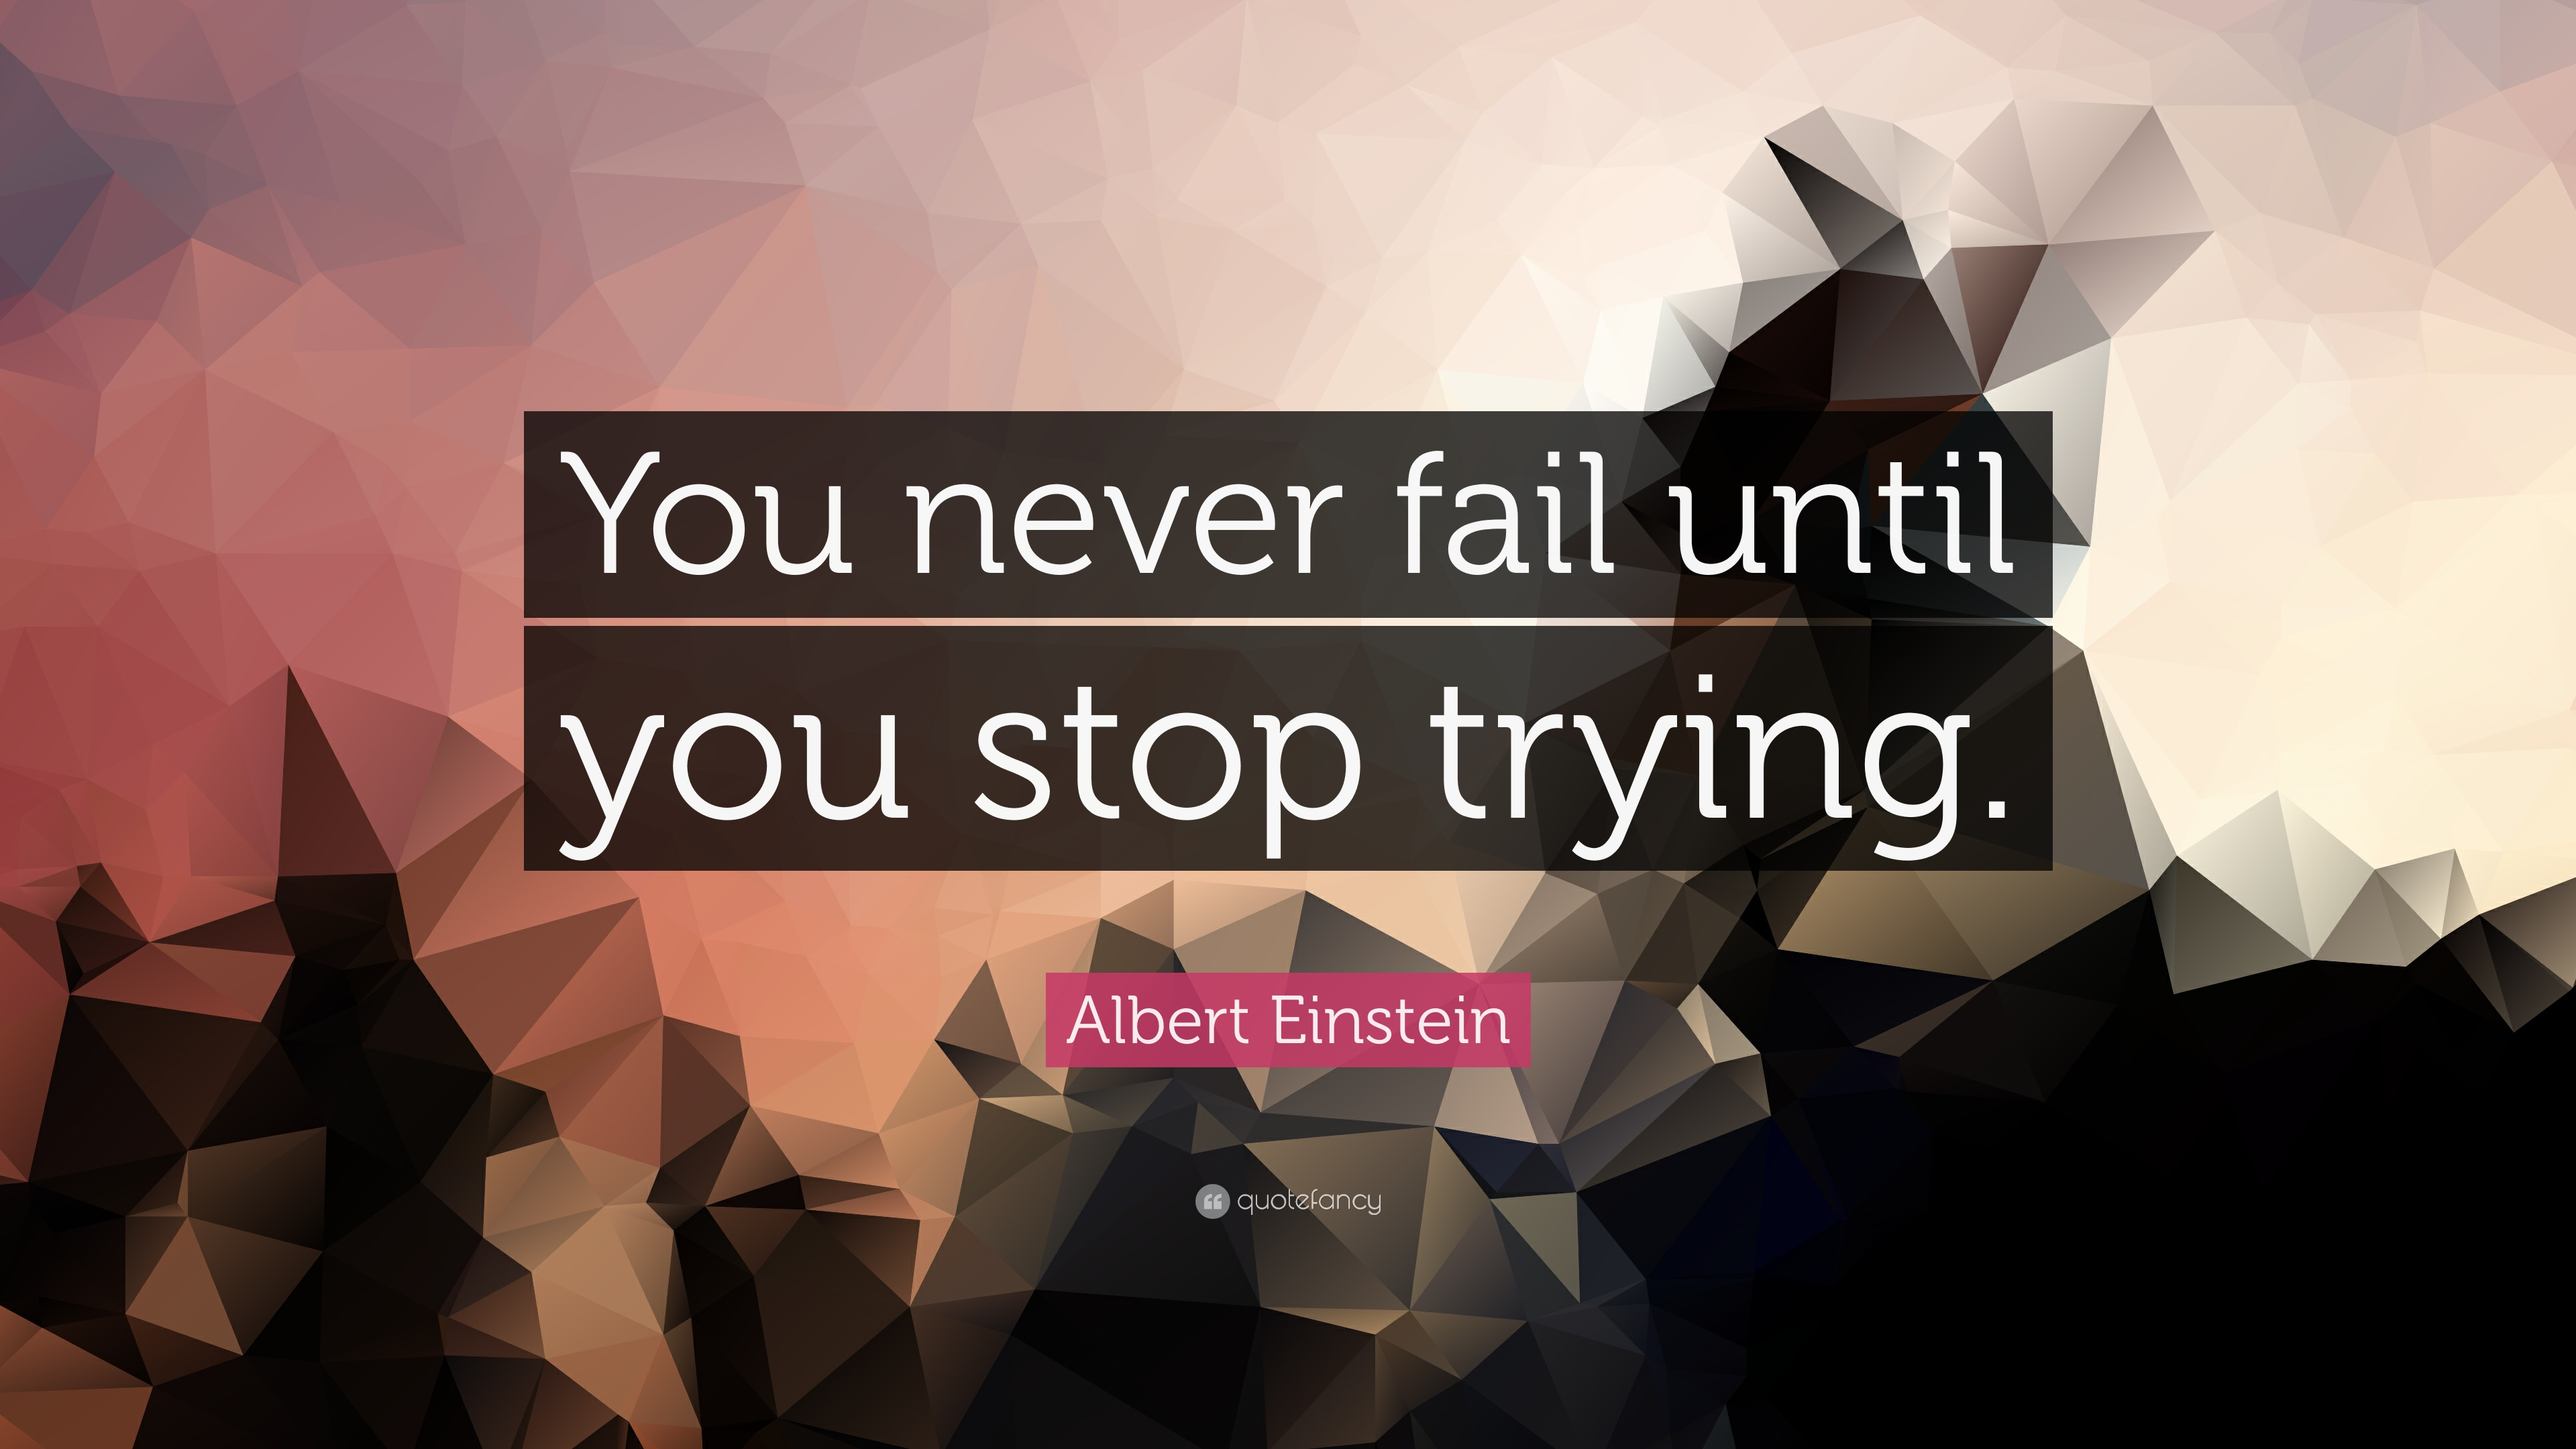 albert einstein quote you never fail until you stop trying  albert einstein quote you never fail until you stop trying